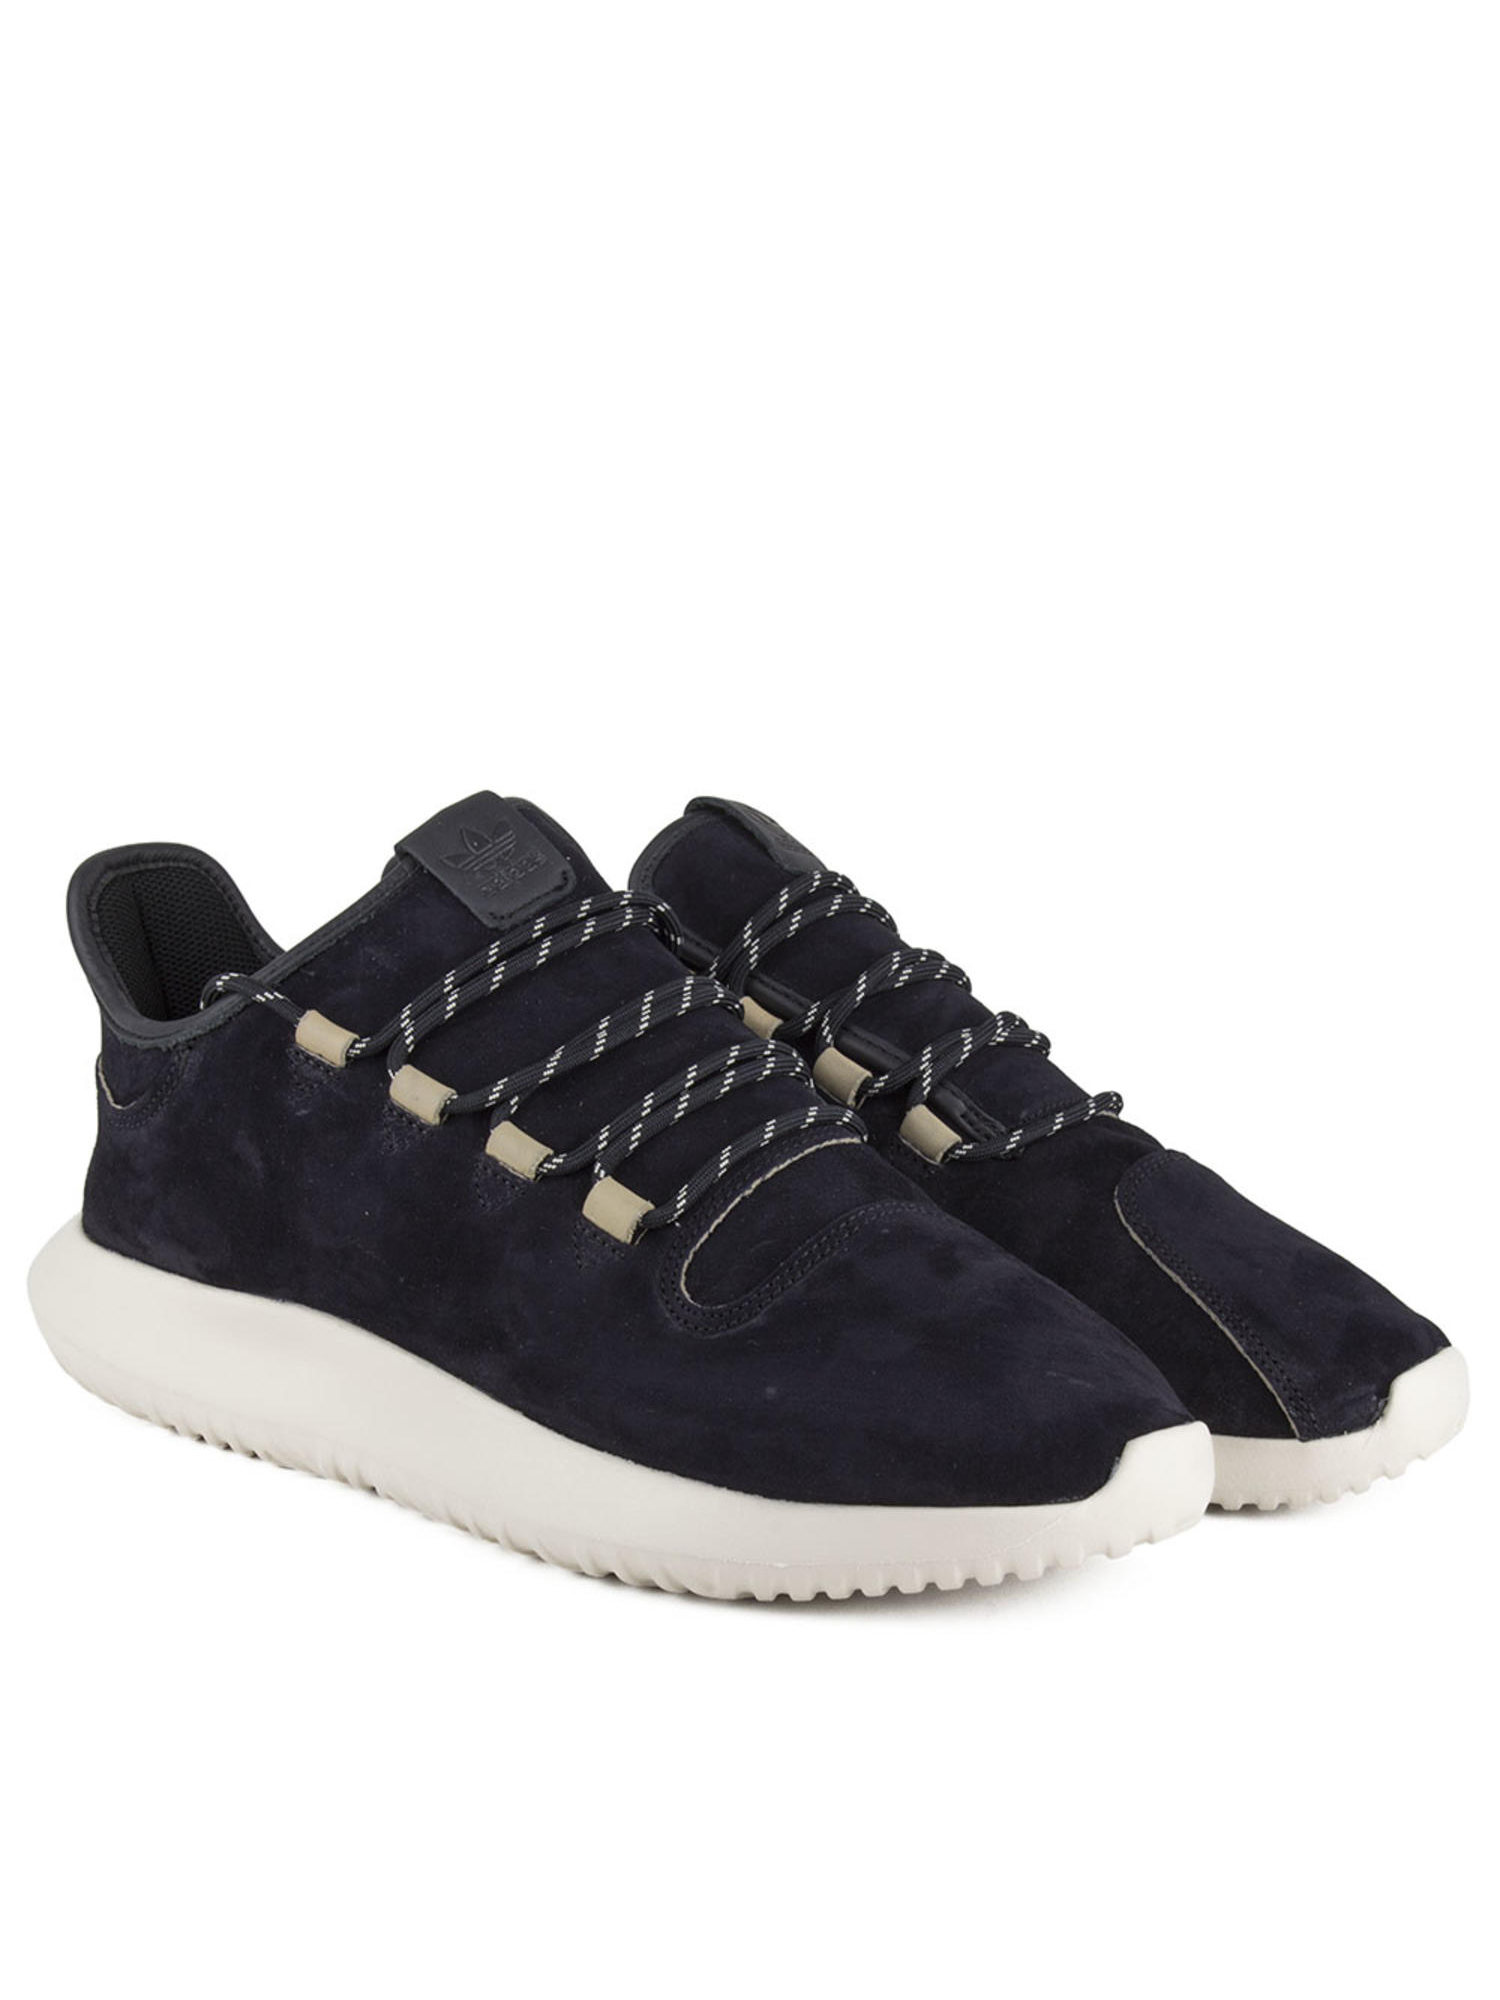 Adidas Sneakers Tubular OMBRA by3568 NERO BIANCO